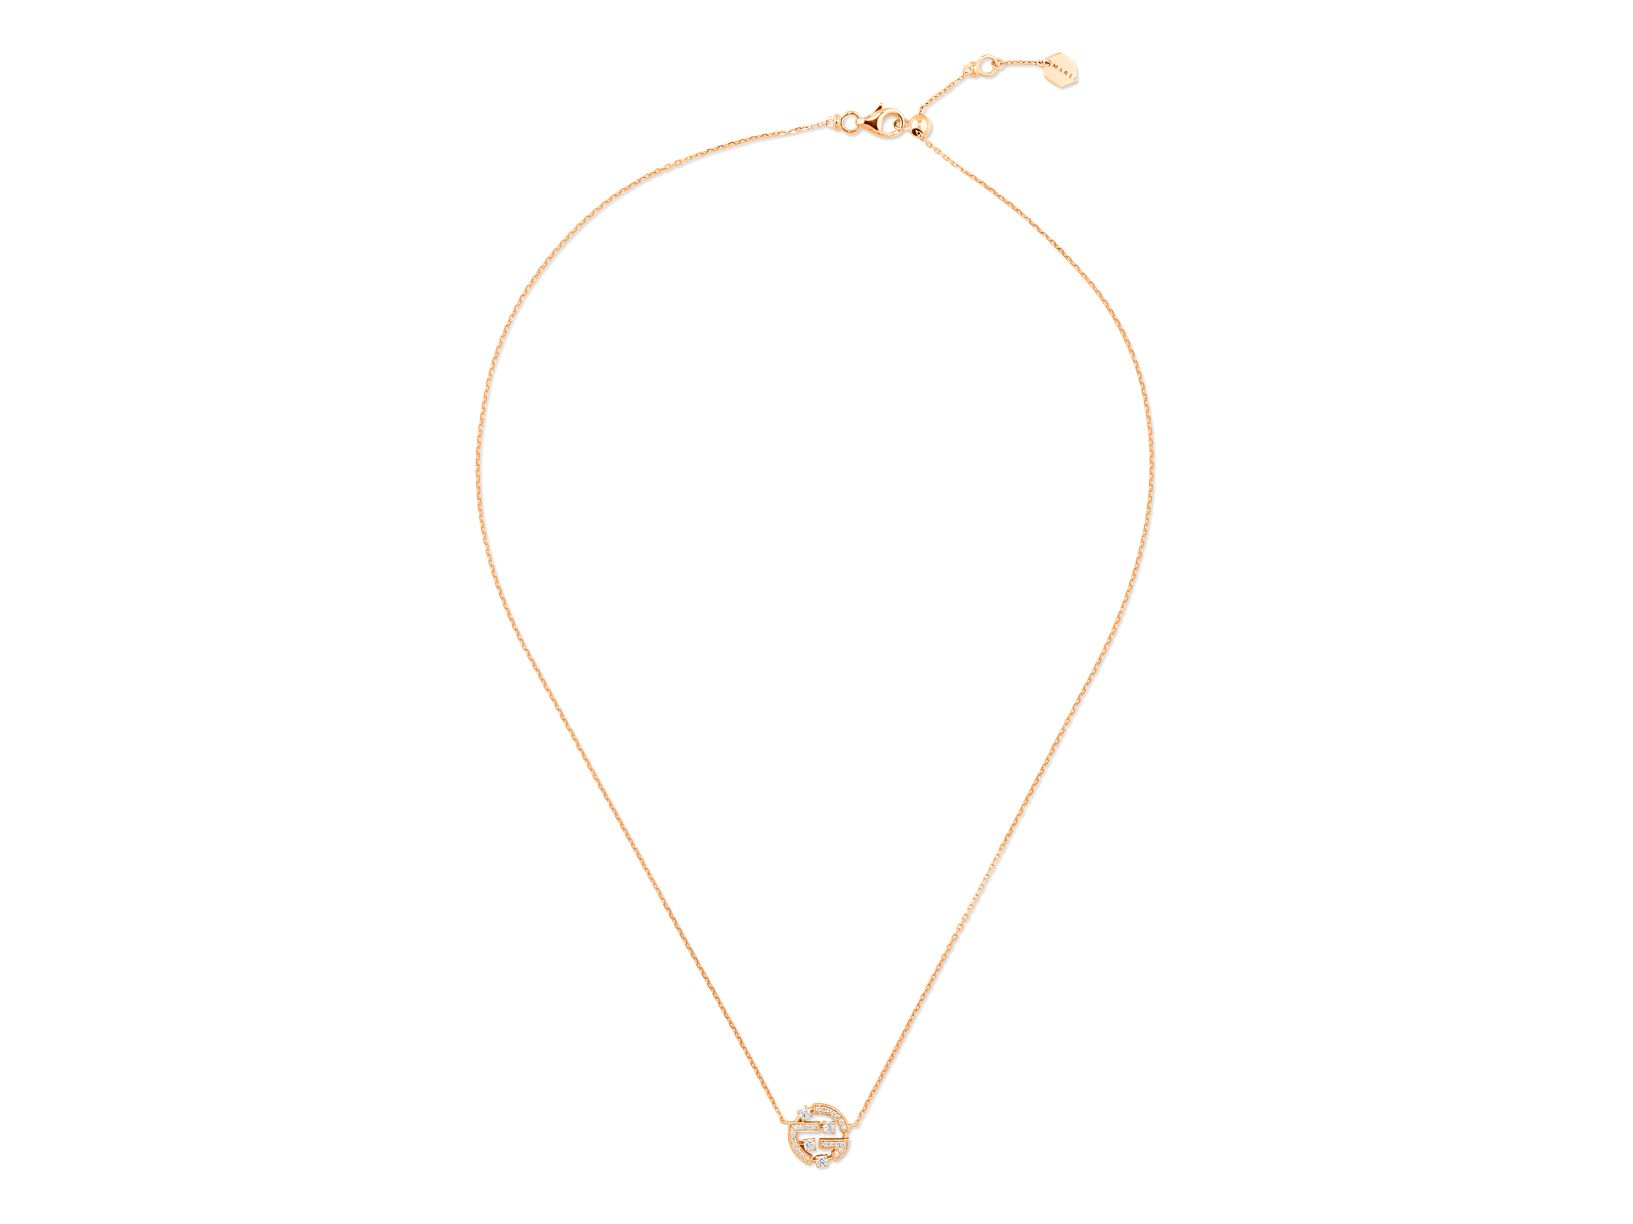 Avenues Mini Chain Necklace